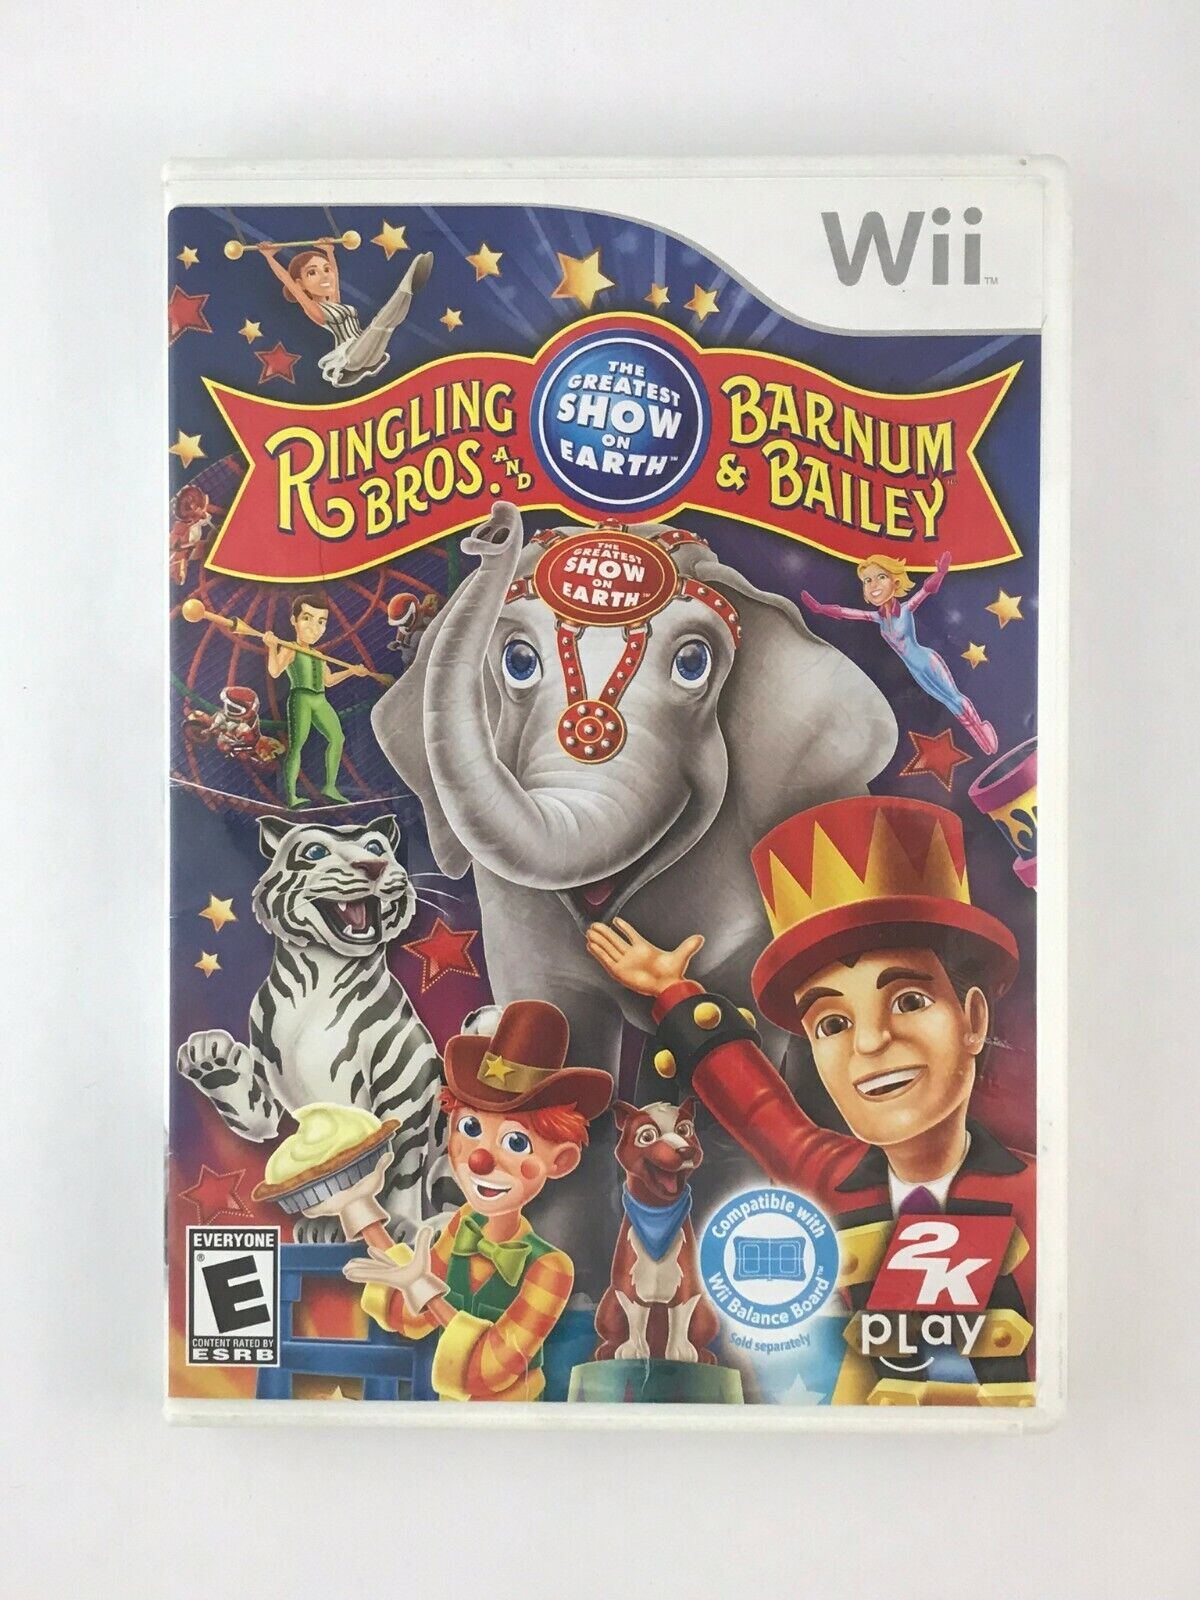 Ringling Bros. and Barnum & Bailey Circus - Nintendo Wii Game - Complete Tested